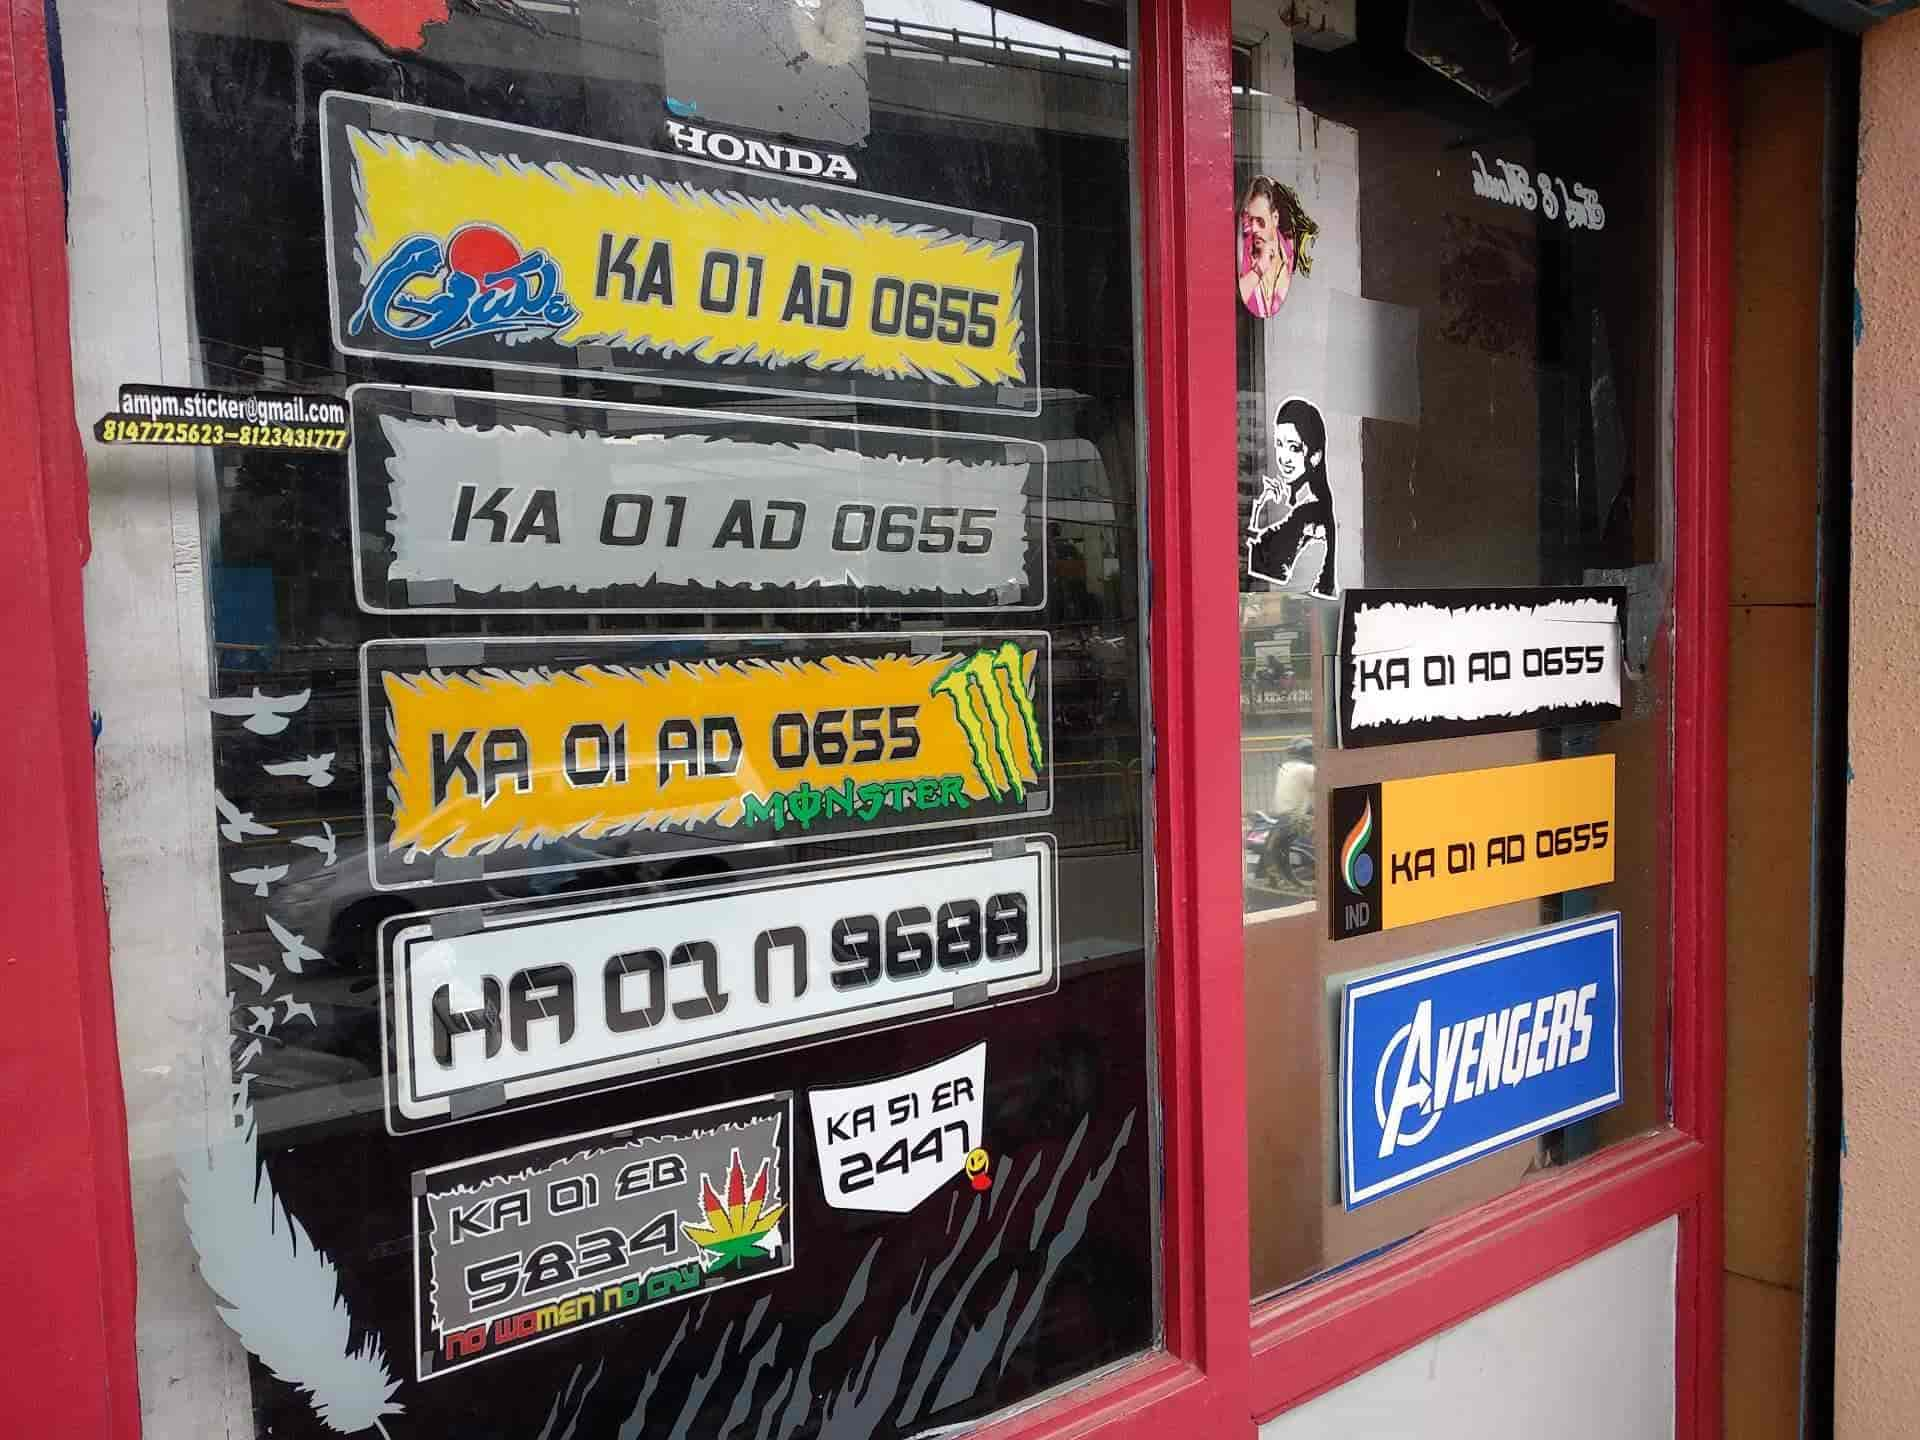 A1 am pm stickers cutting photos garvebhavipalya bangalore sign board dealers